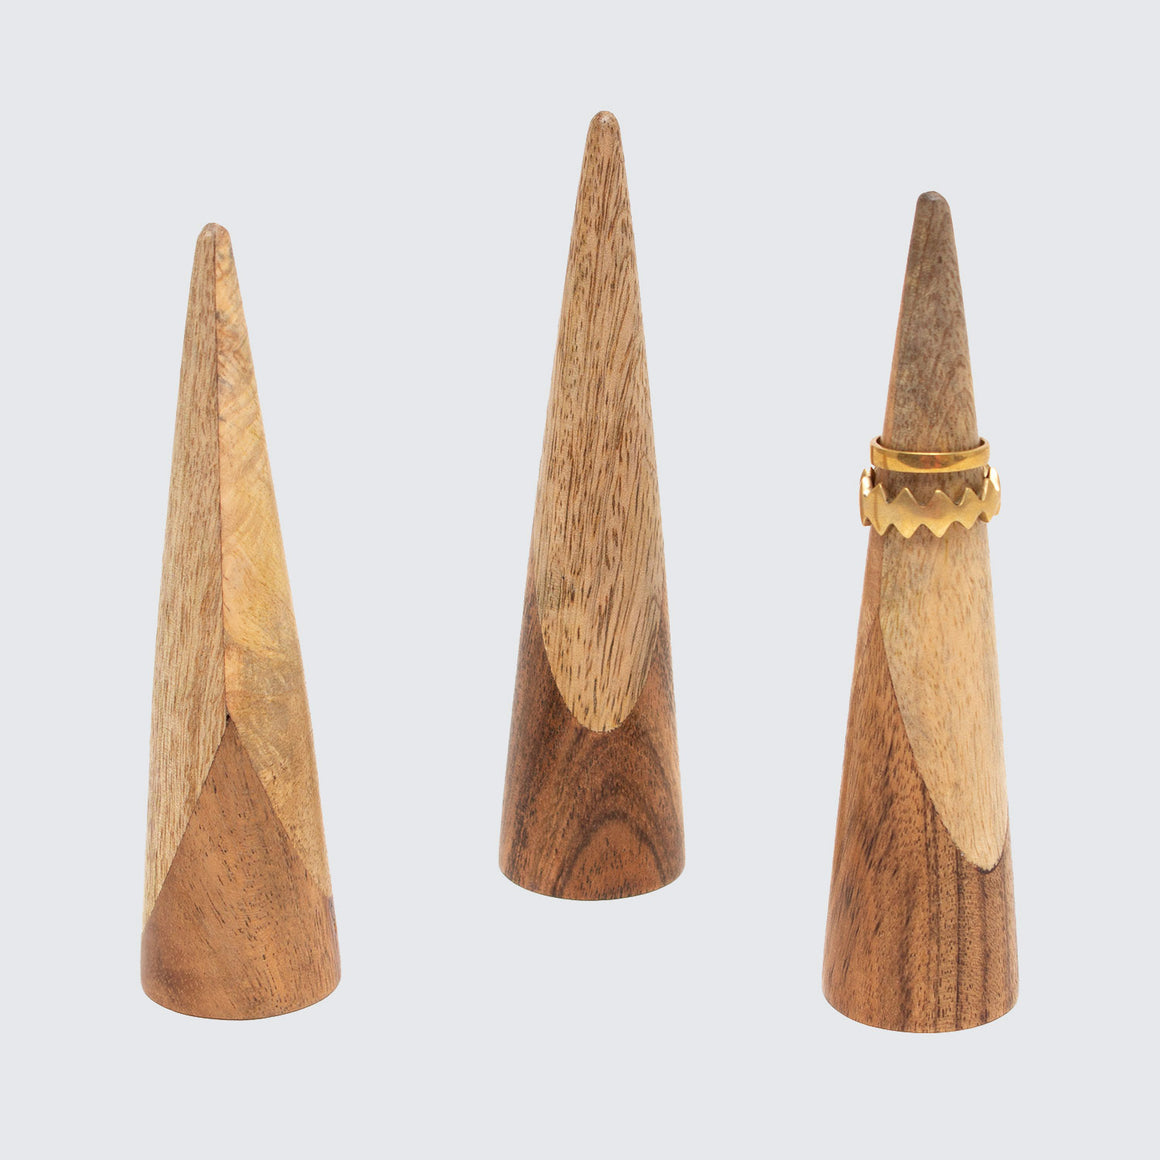 Mango Wood Indian Ring Cones